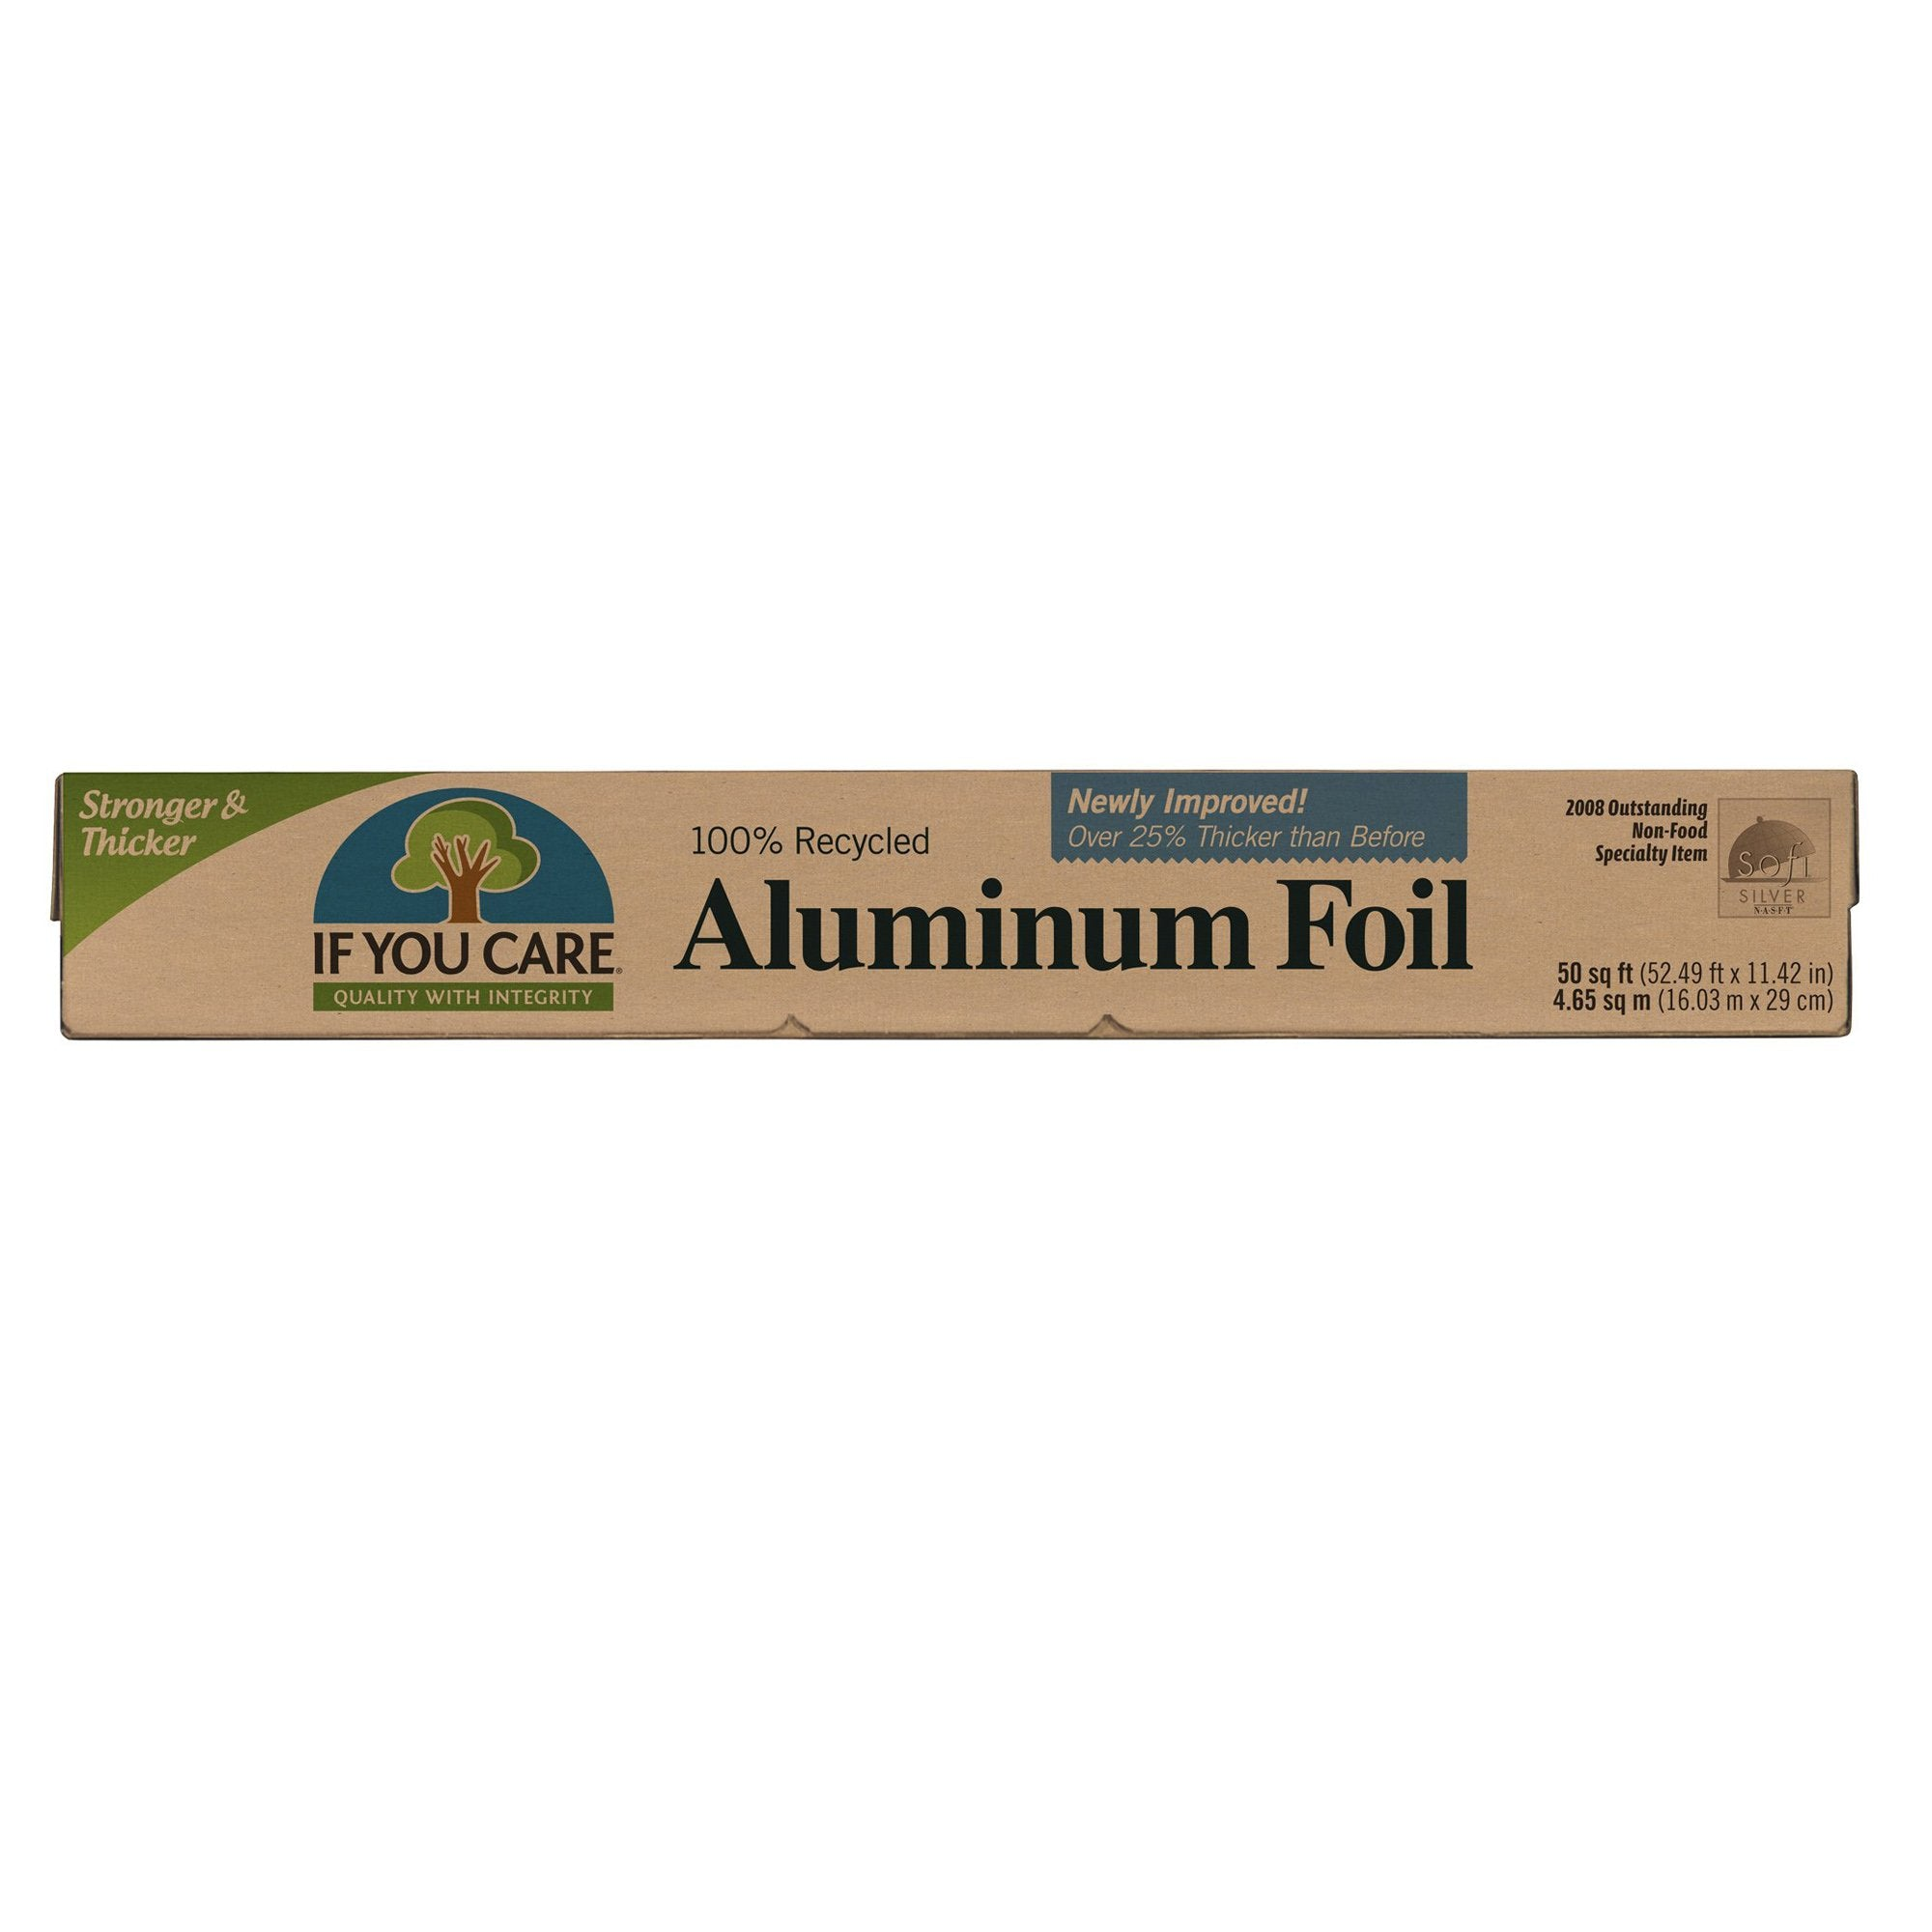 100% Recycled Aluminum Foil by If You Care, 50 square feet